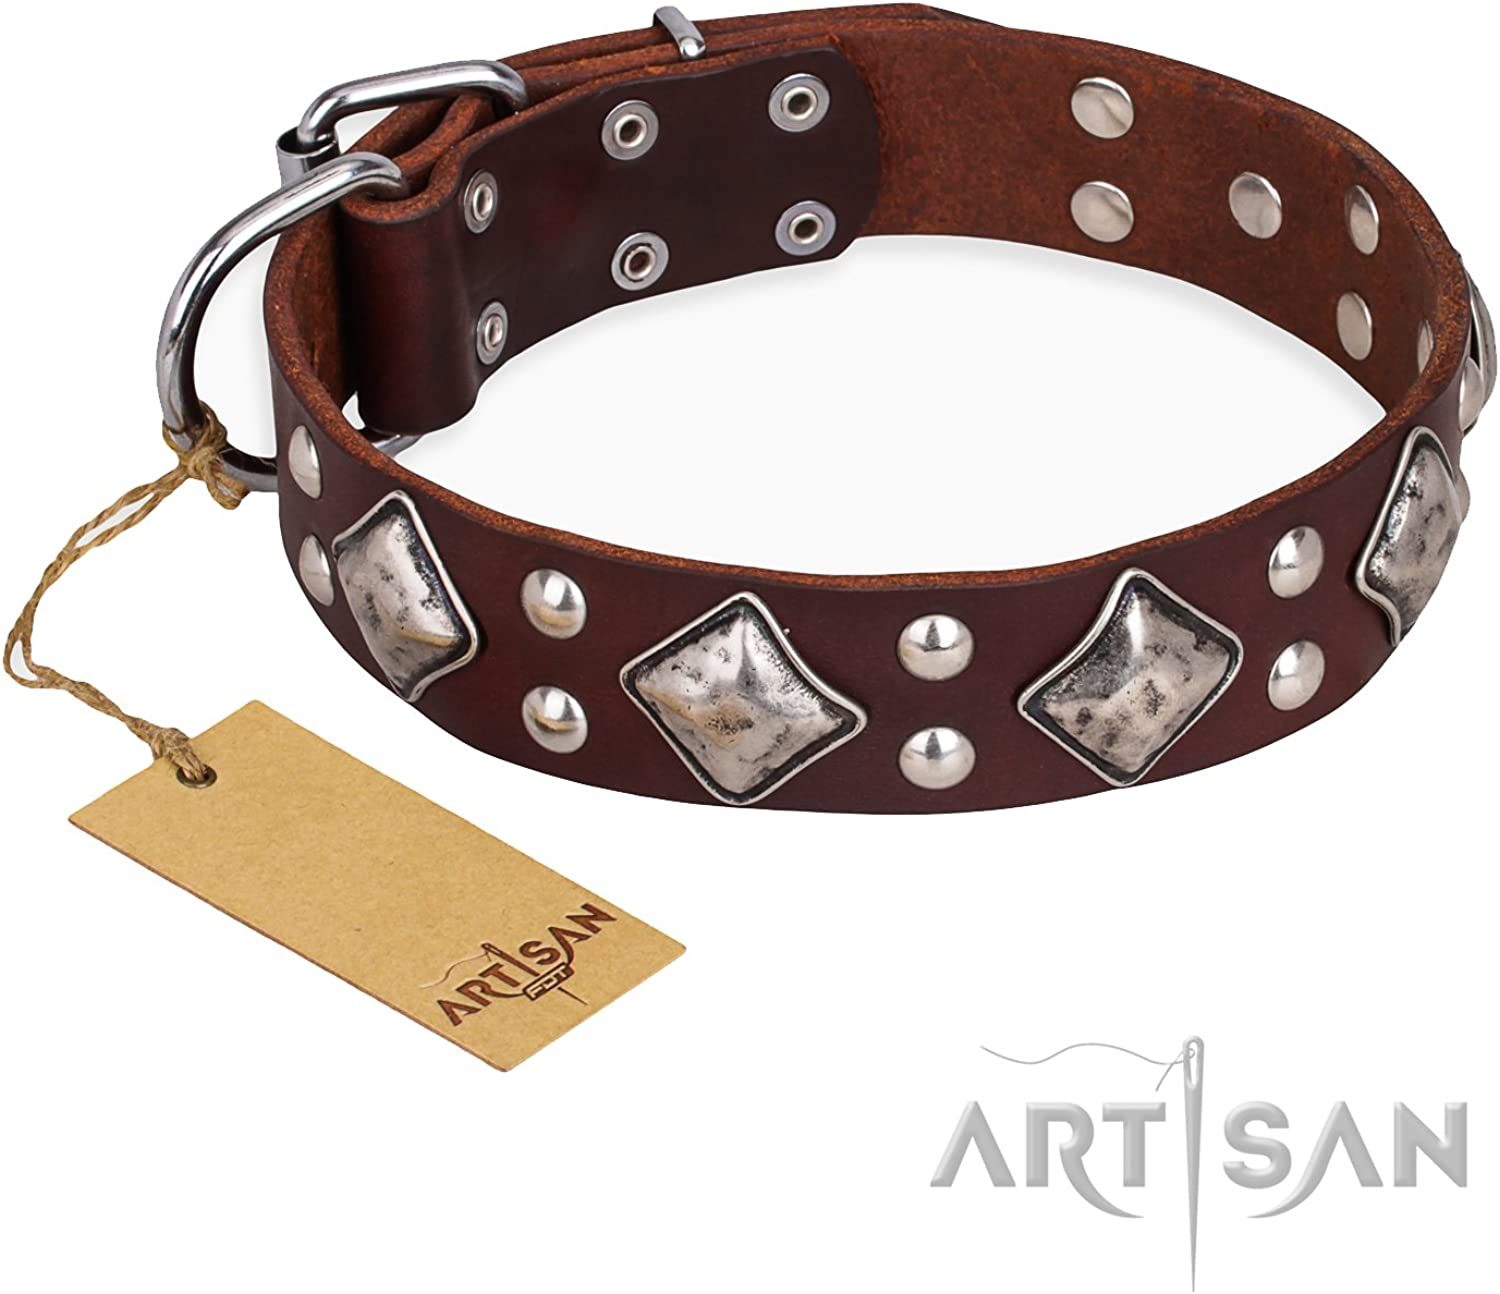 FDT Artisan 34 inch Brown Leather Dog Collar with Fake Silver Decor  Unconventional Allure